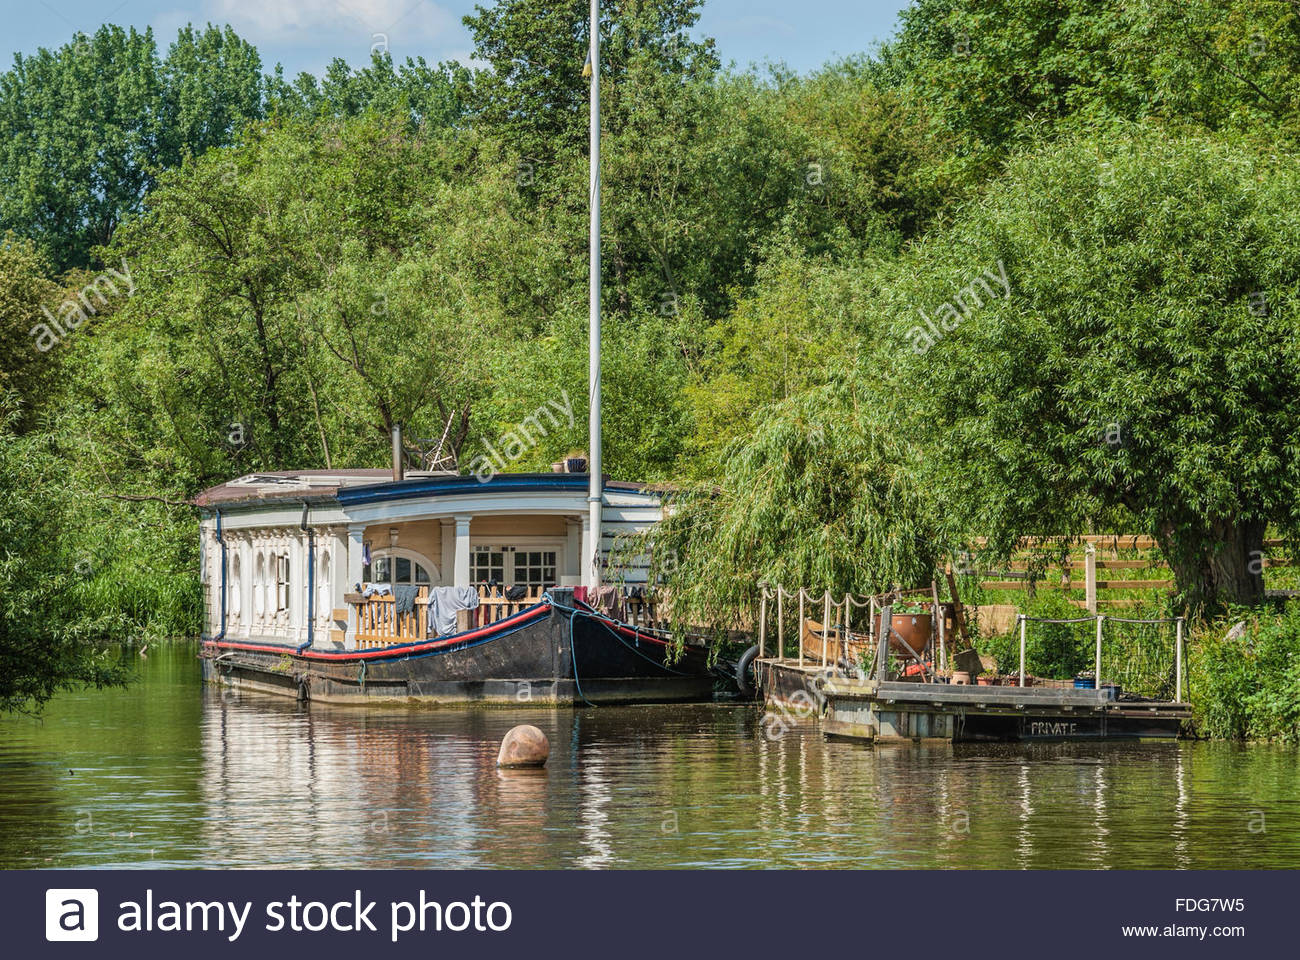 House Boat moored at the River Thames near Oxford, England, UK. | Hausboot auf dem Themse Fluss bei Oxford - Stock Image